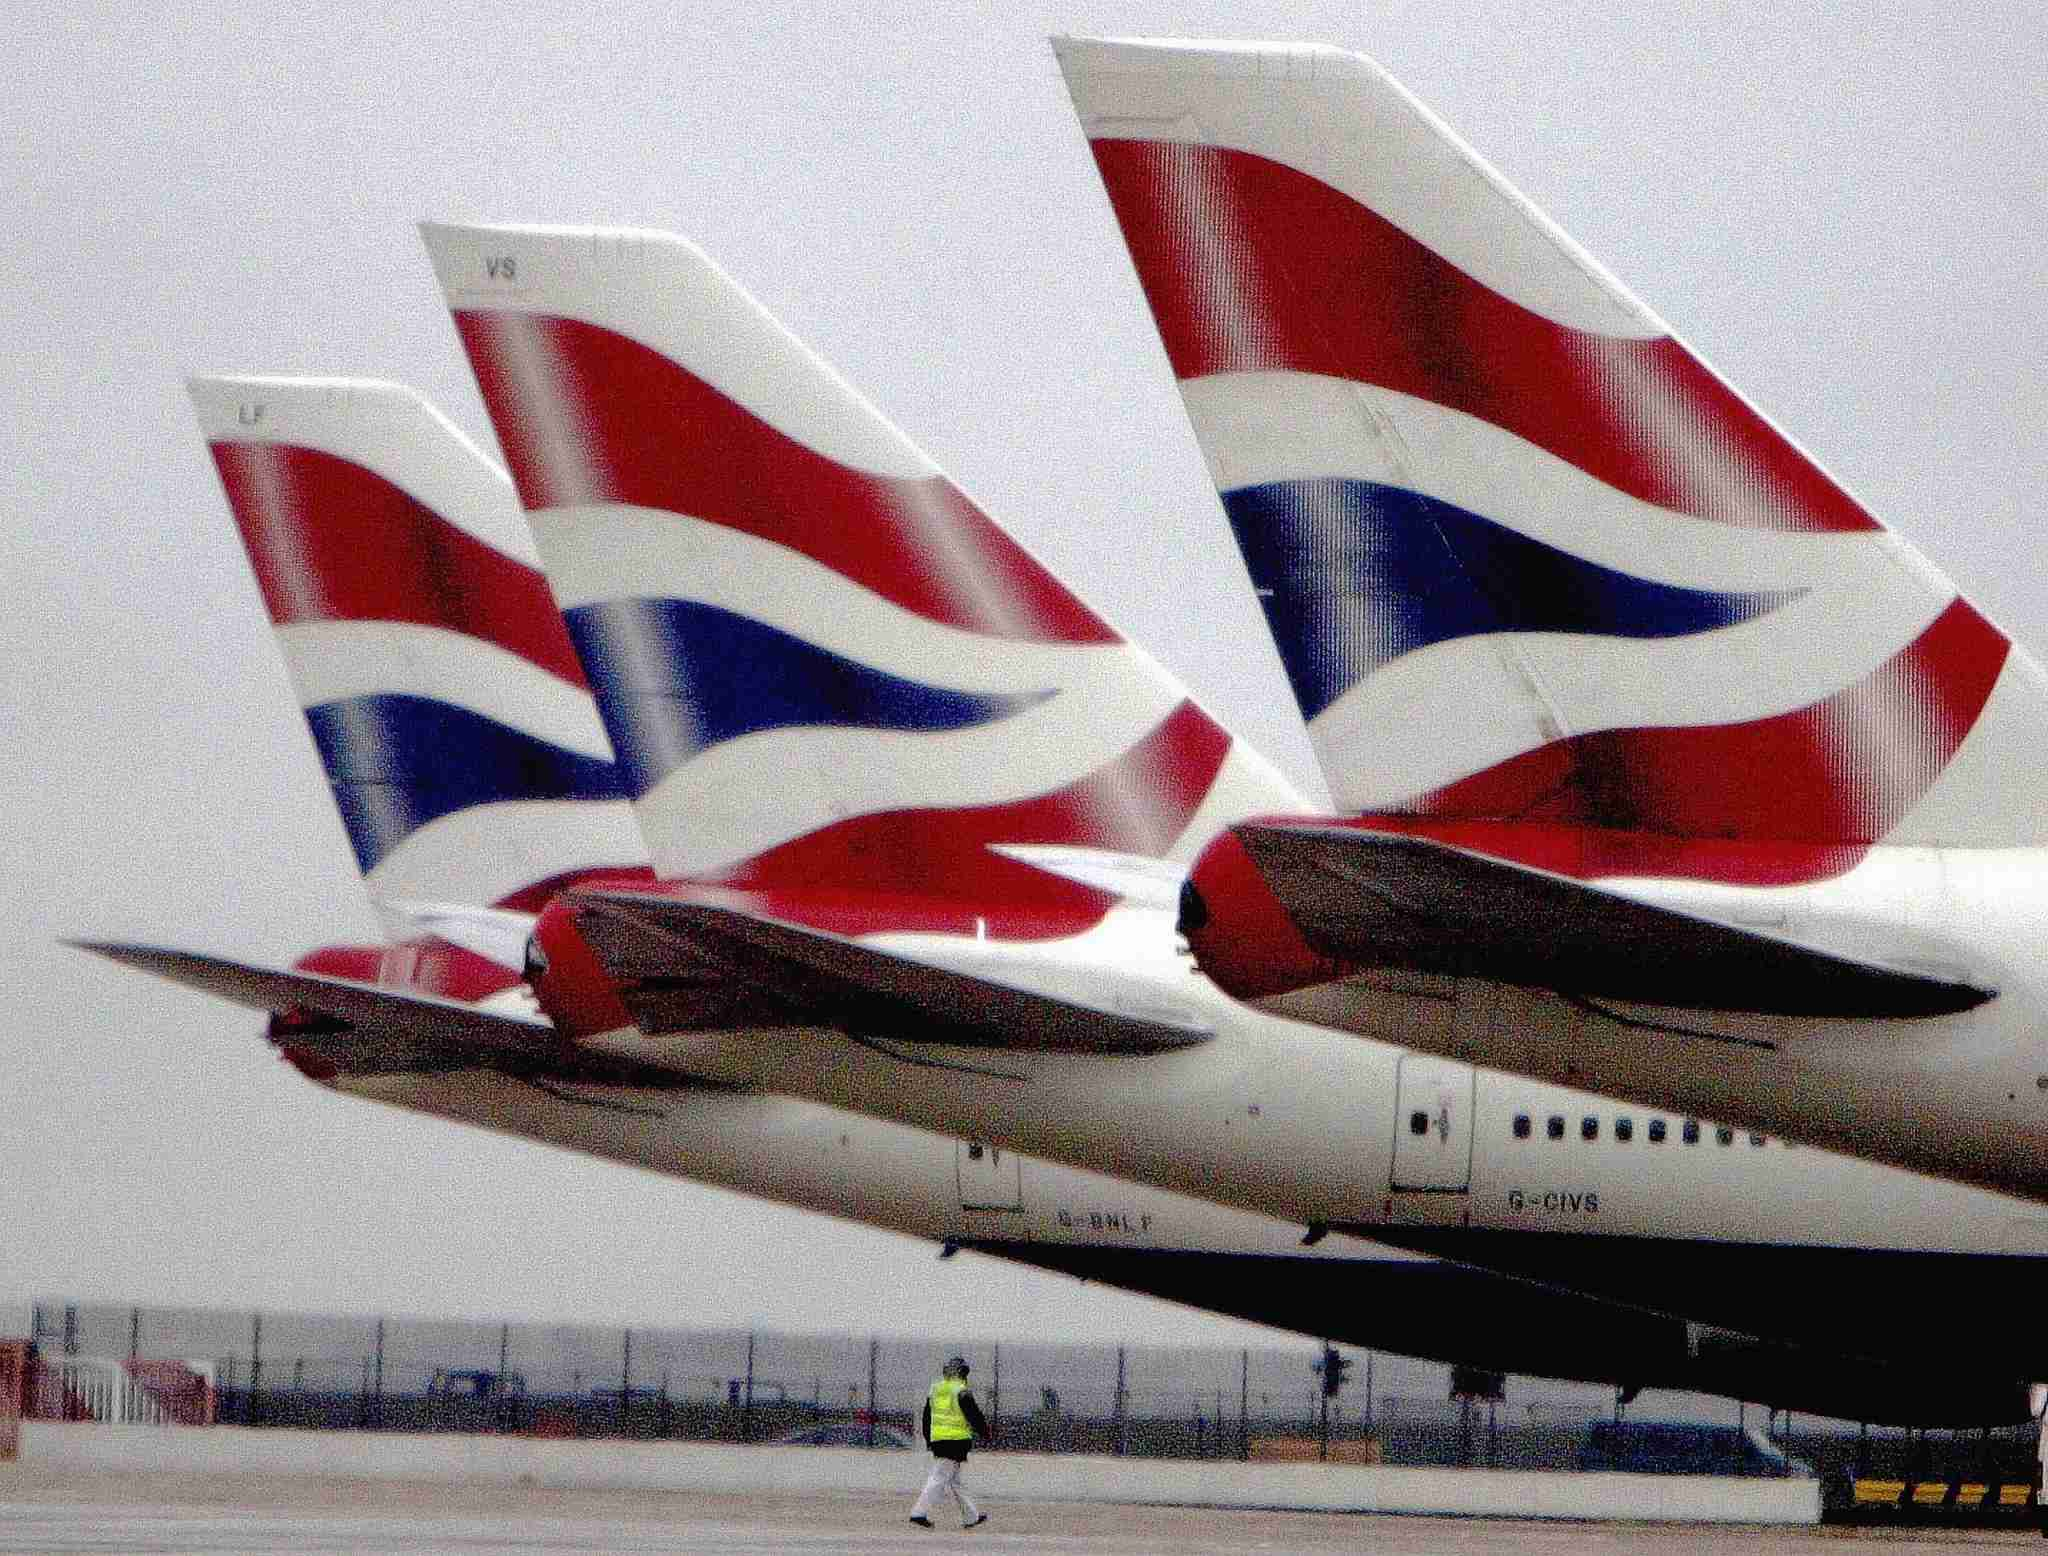 Tails of British Airways planes are seen at the terminal. (Photo by Ian Waldie/Getty Images)